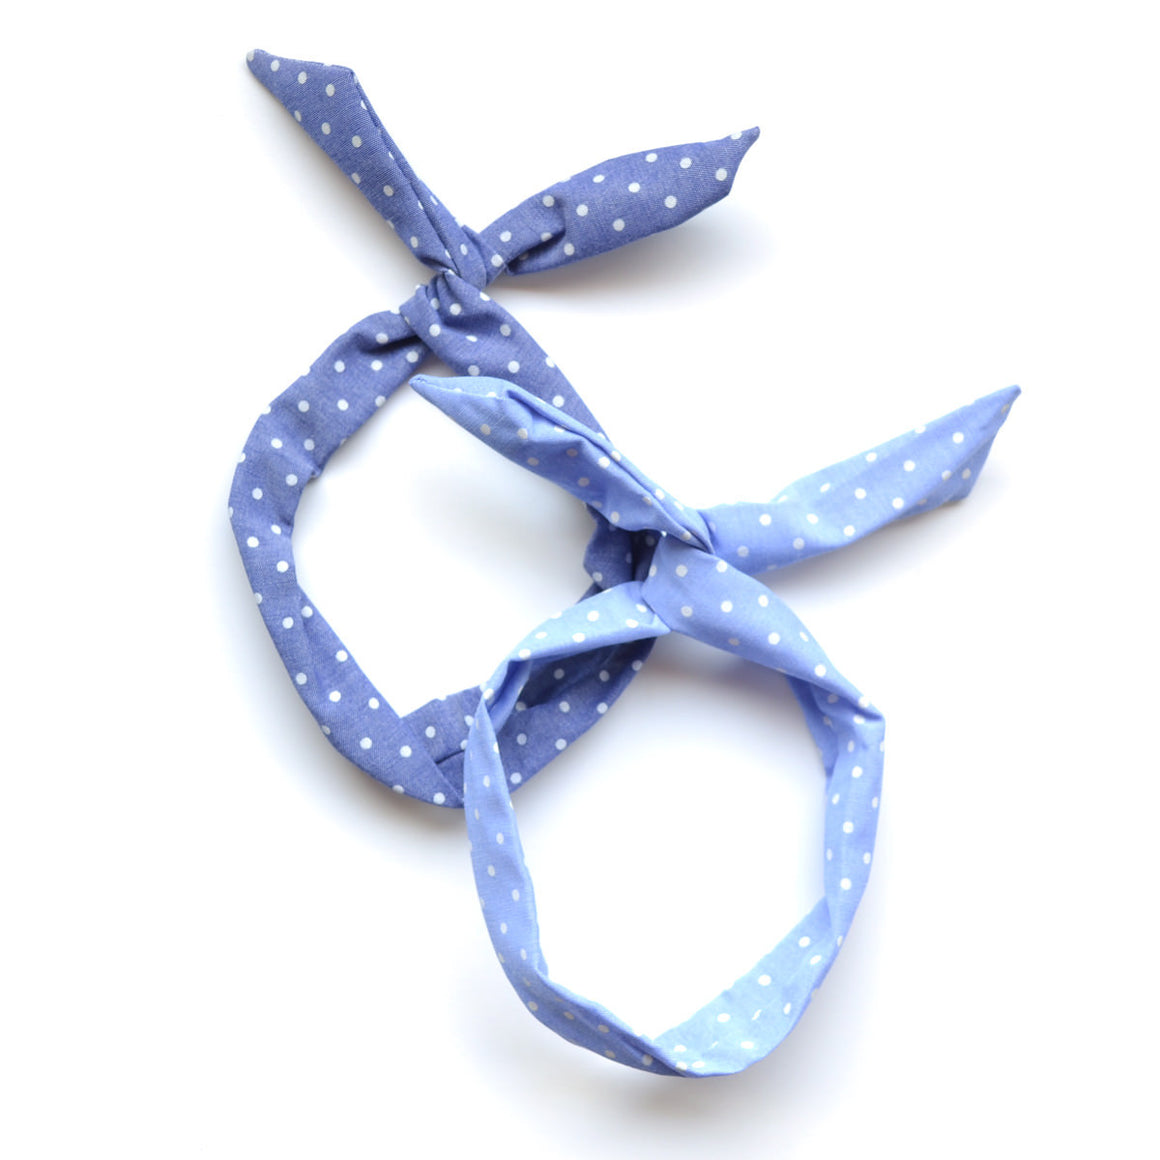 denim polka dot twist tie // hello shiso hair accessories for girls